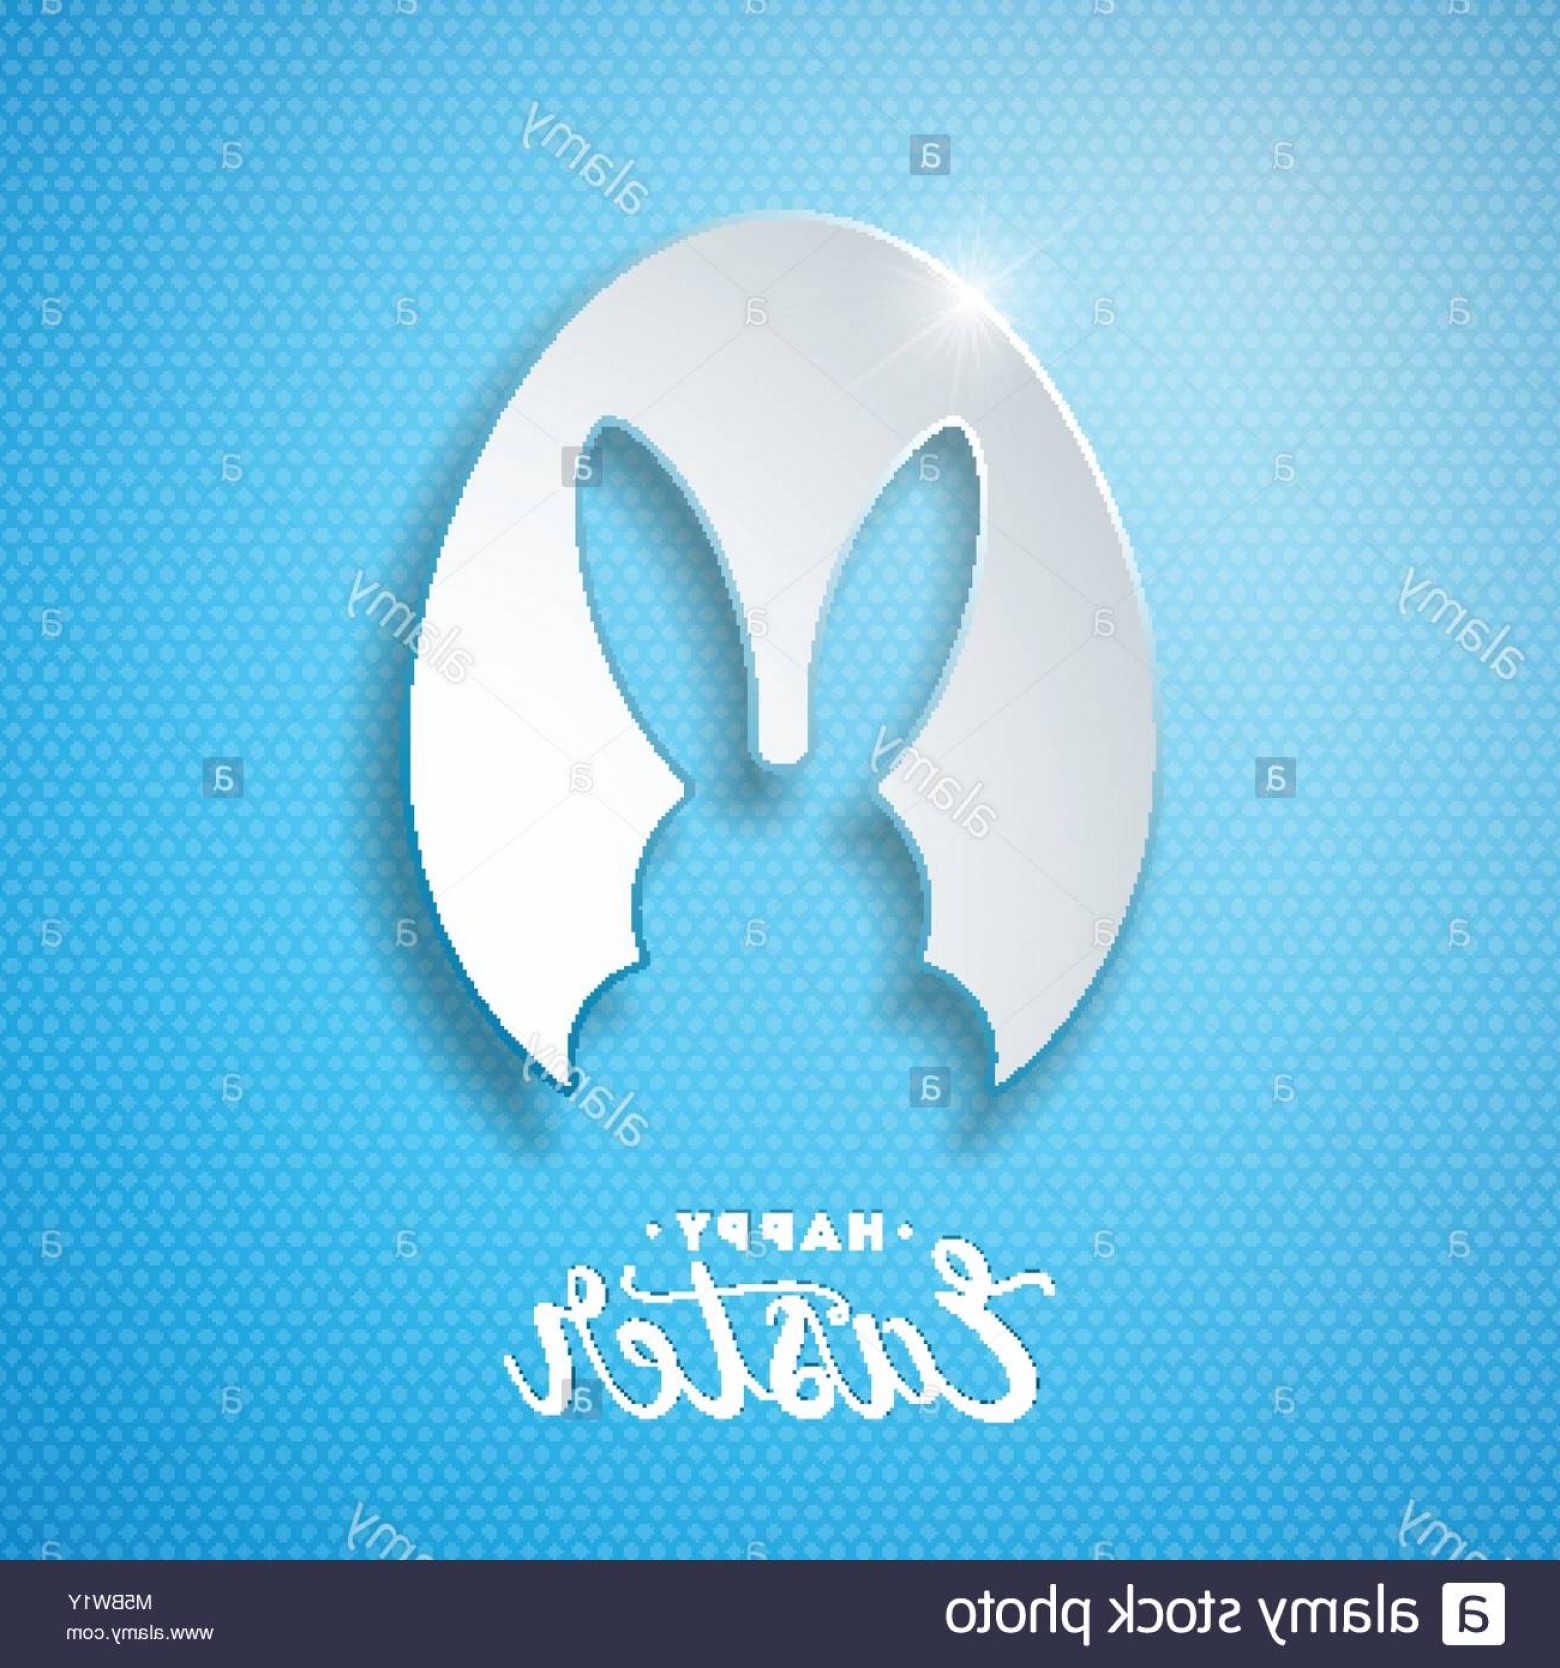 Vector RabbitEars: Stock Photo Vector Illustration Of Happy Easter Holiday With Rabbit Ears In Cutting